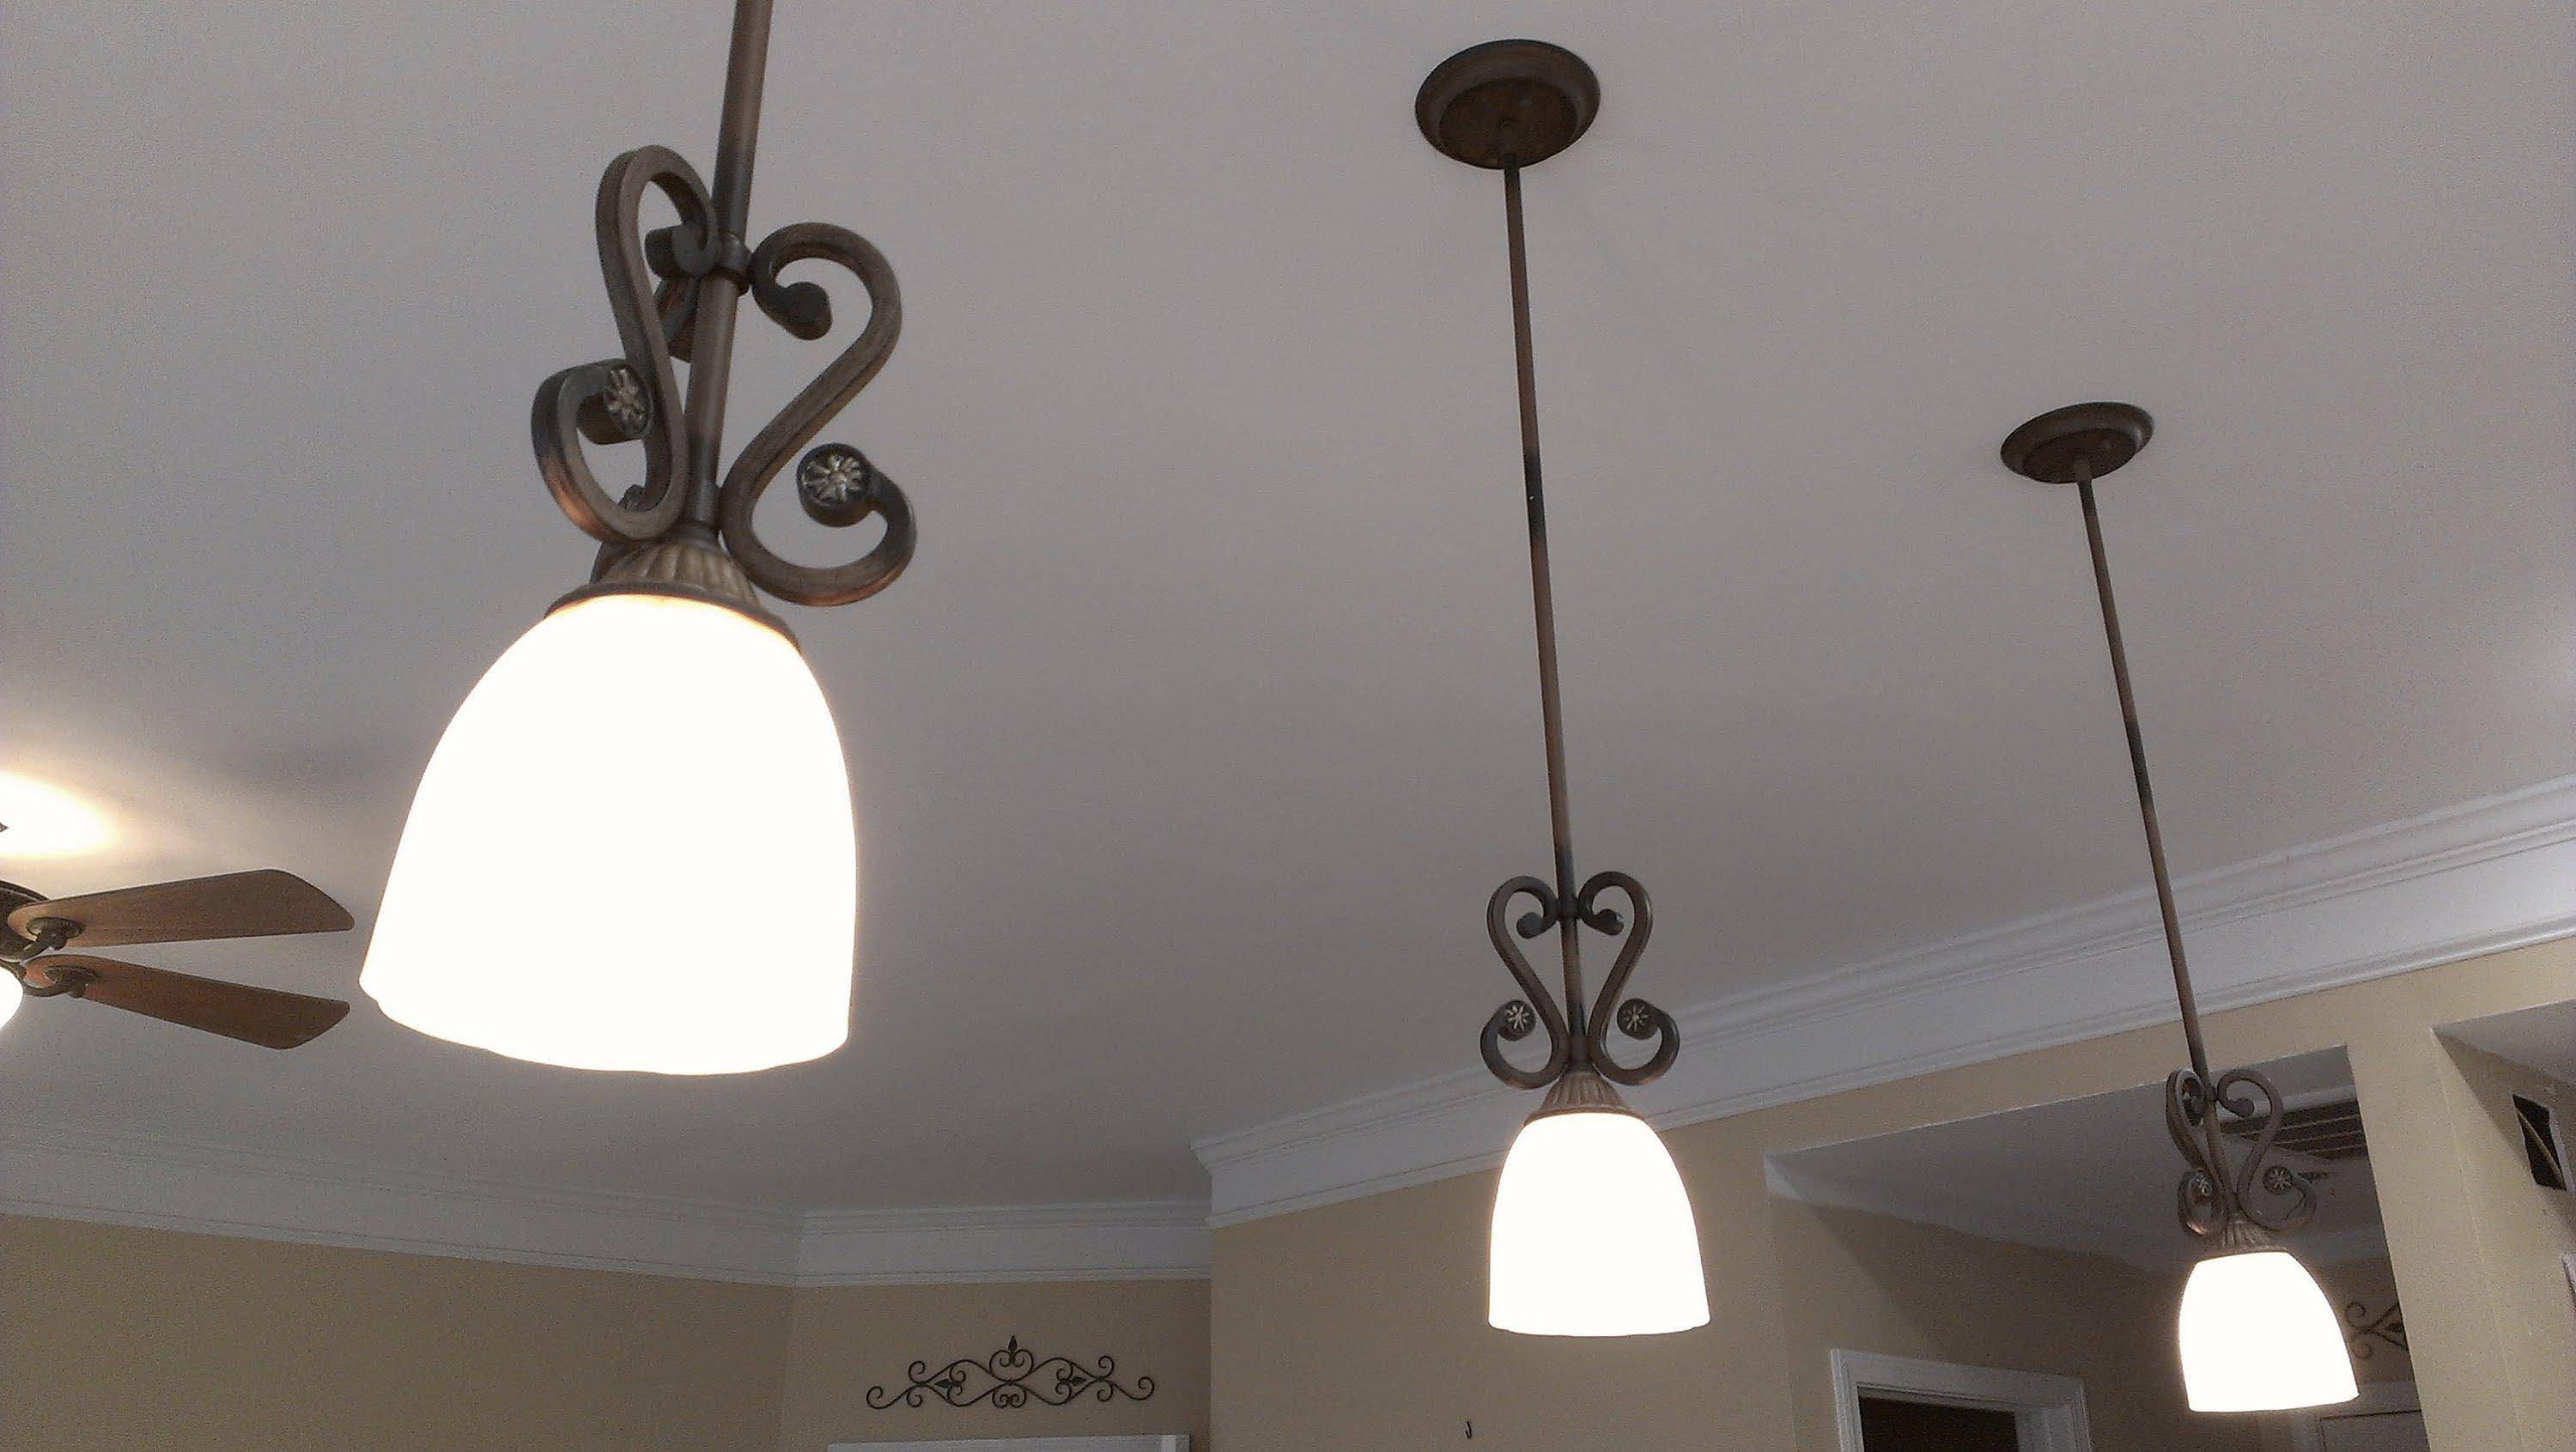 Mini Pendant Lights For Kitchen Island Hanging Lighting Ideas with regard to Pendant Lighting for Track Systems (Image 9 of 15)